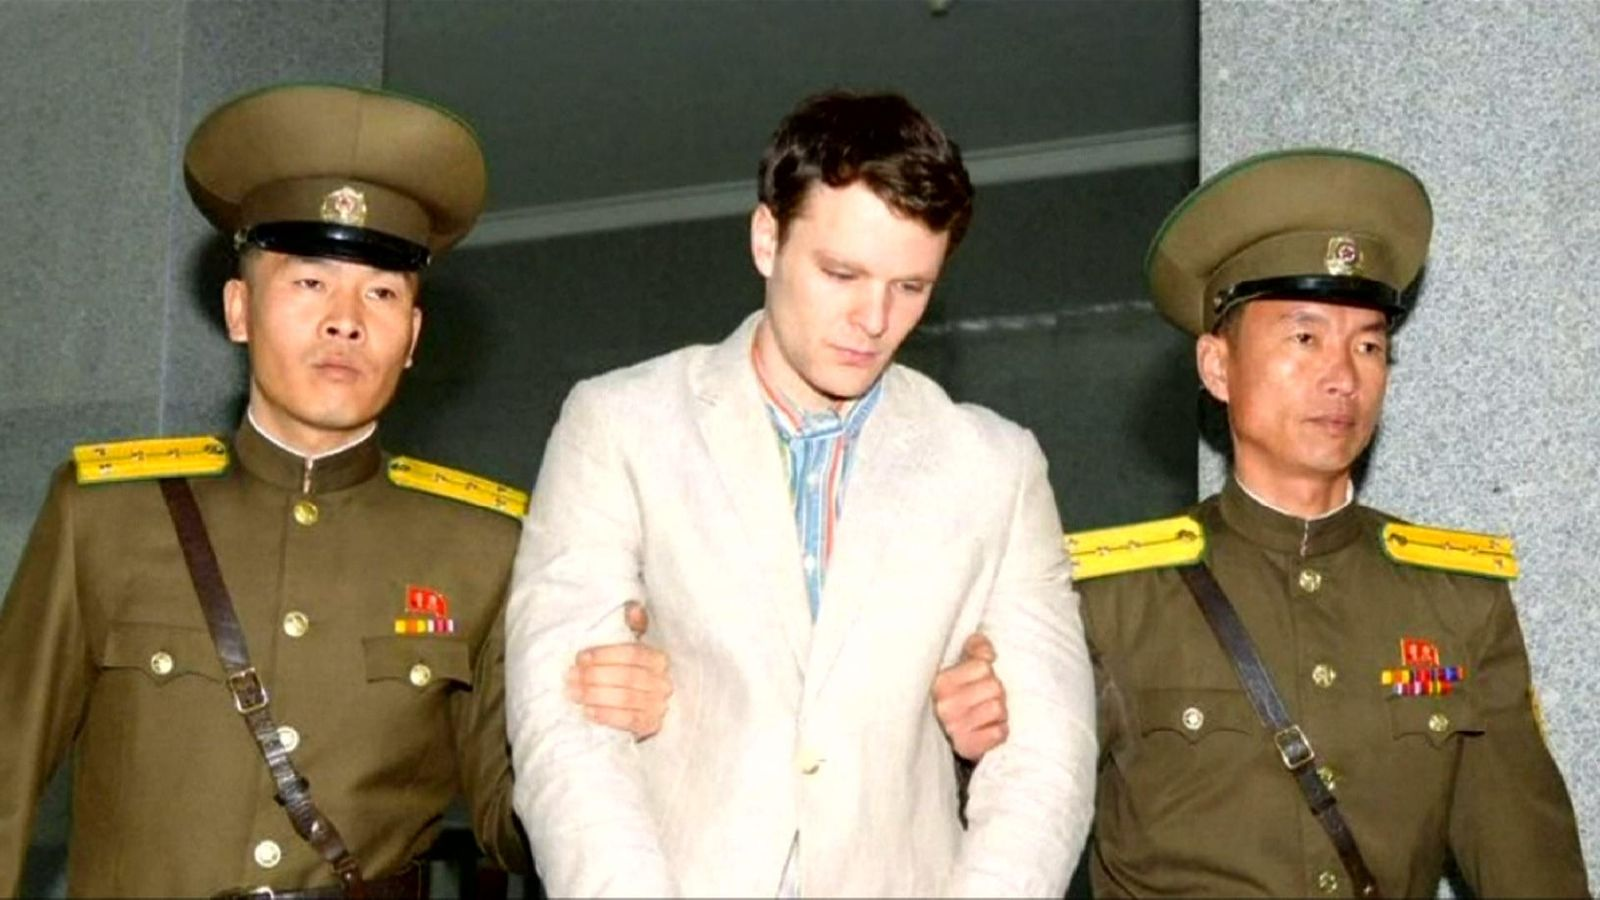 Trump 'agreed to pay £1.6m to North Korea' for US student's release